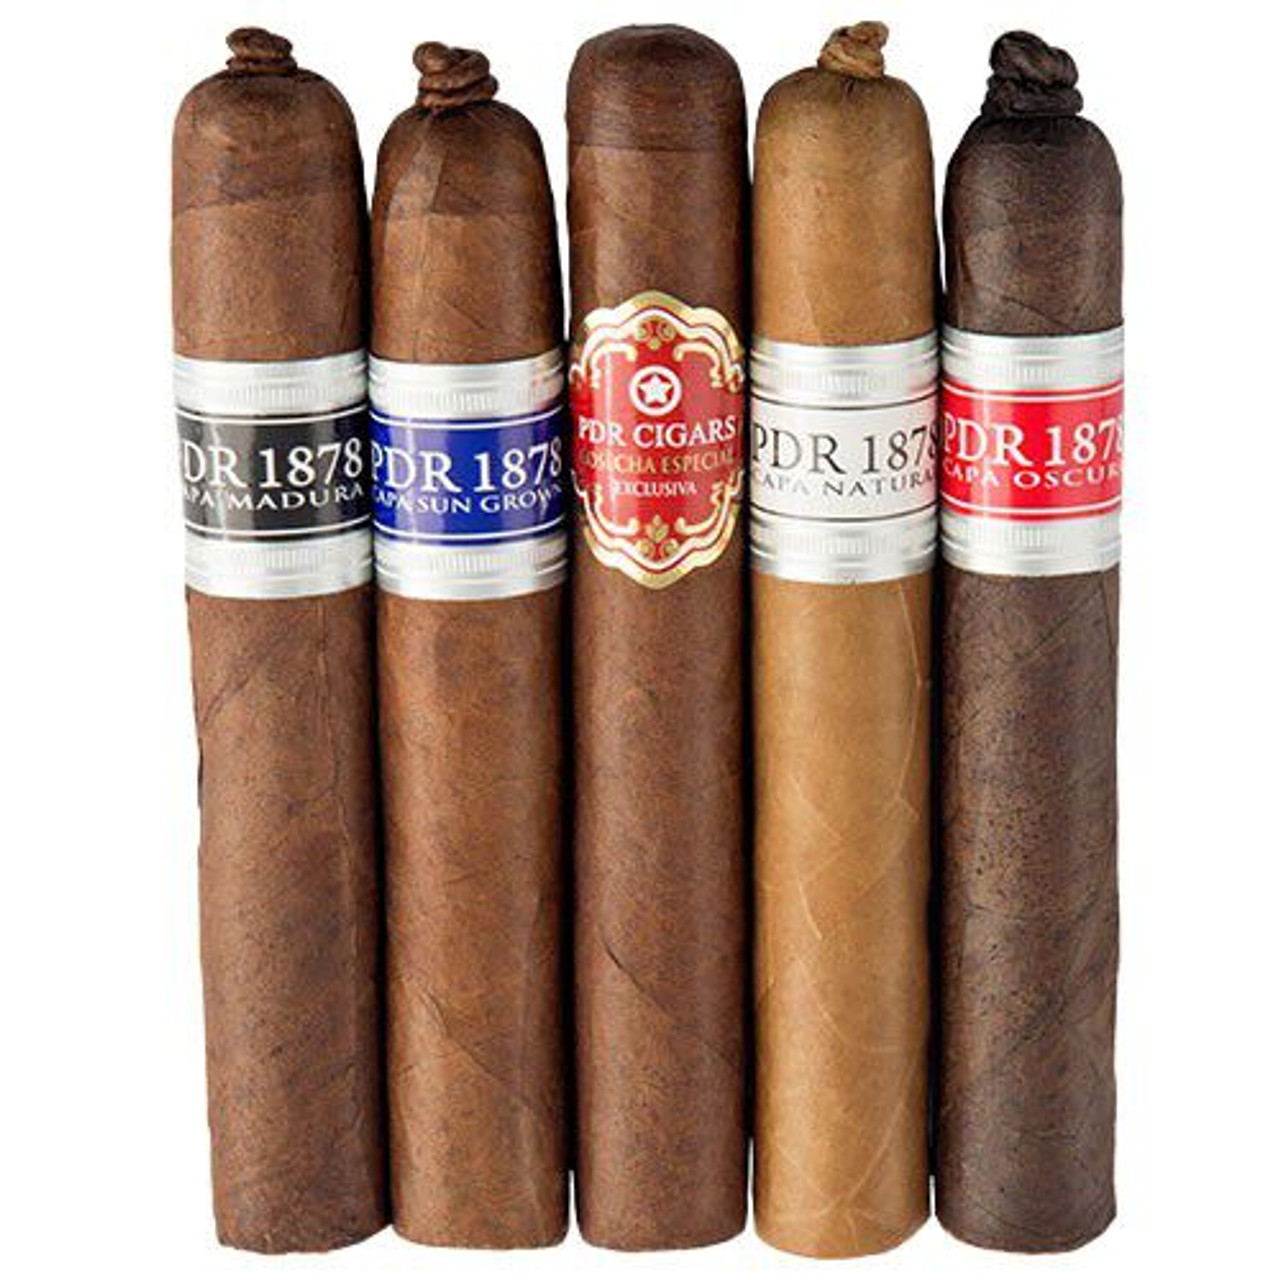 Cigar Samplers PDR 5-Cigar Collection Cigars (Pack of 5)